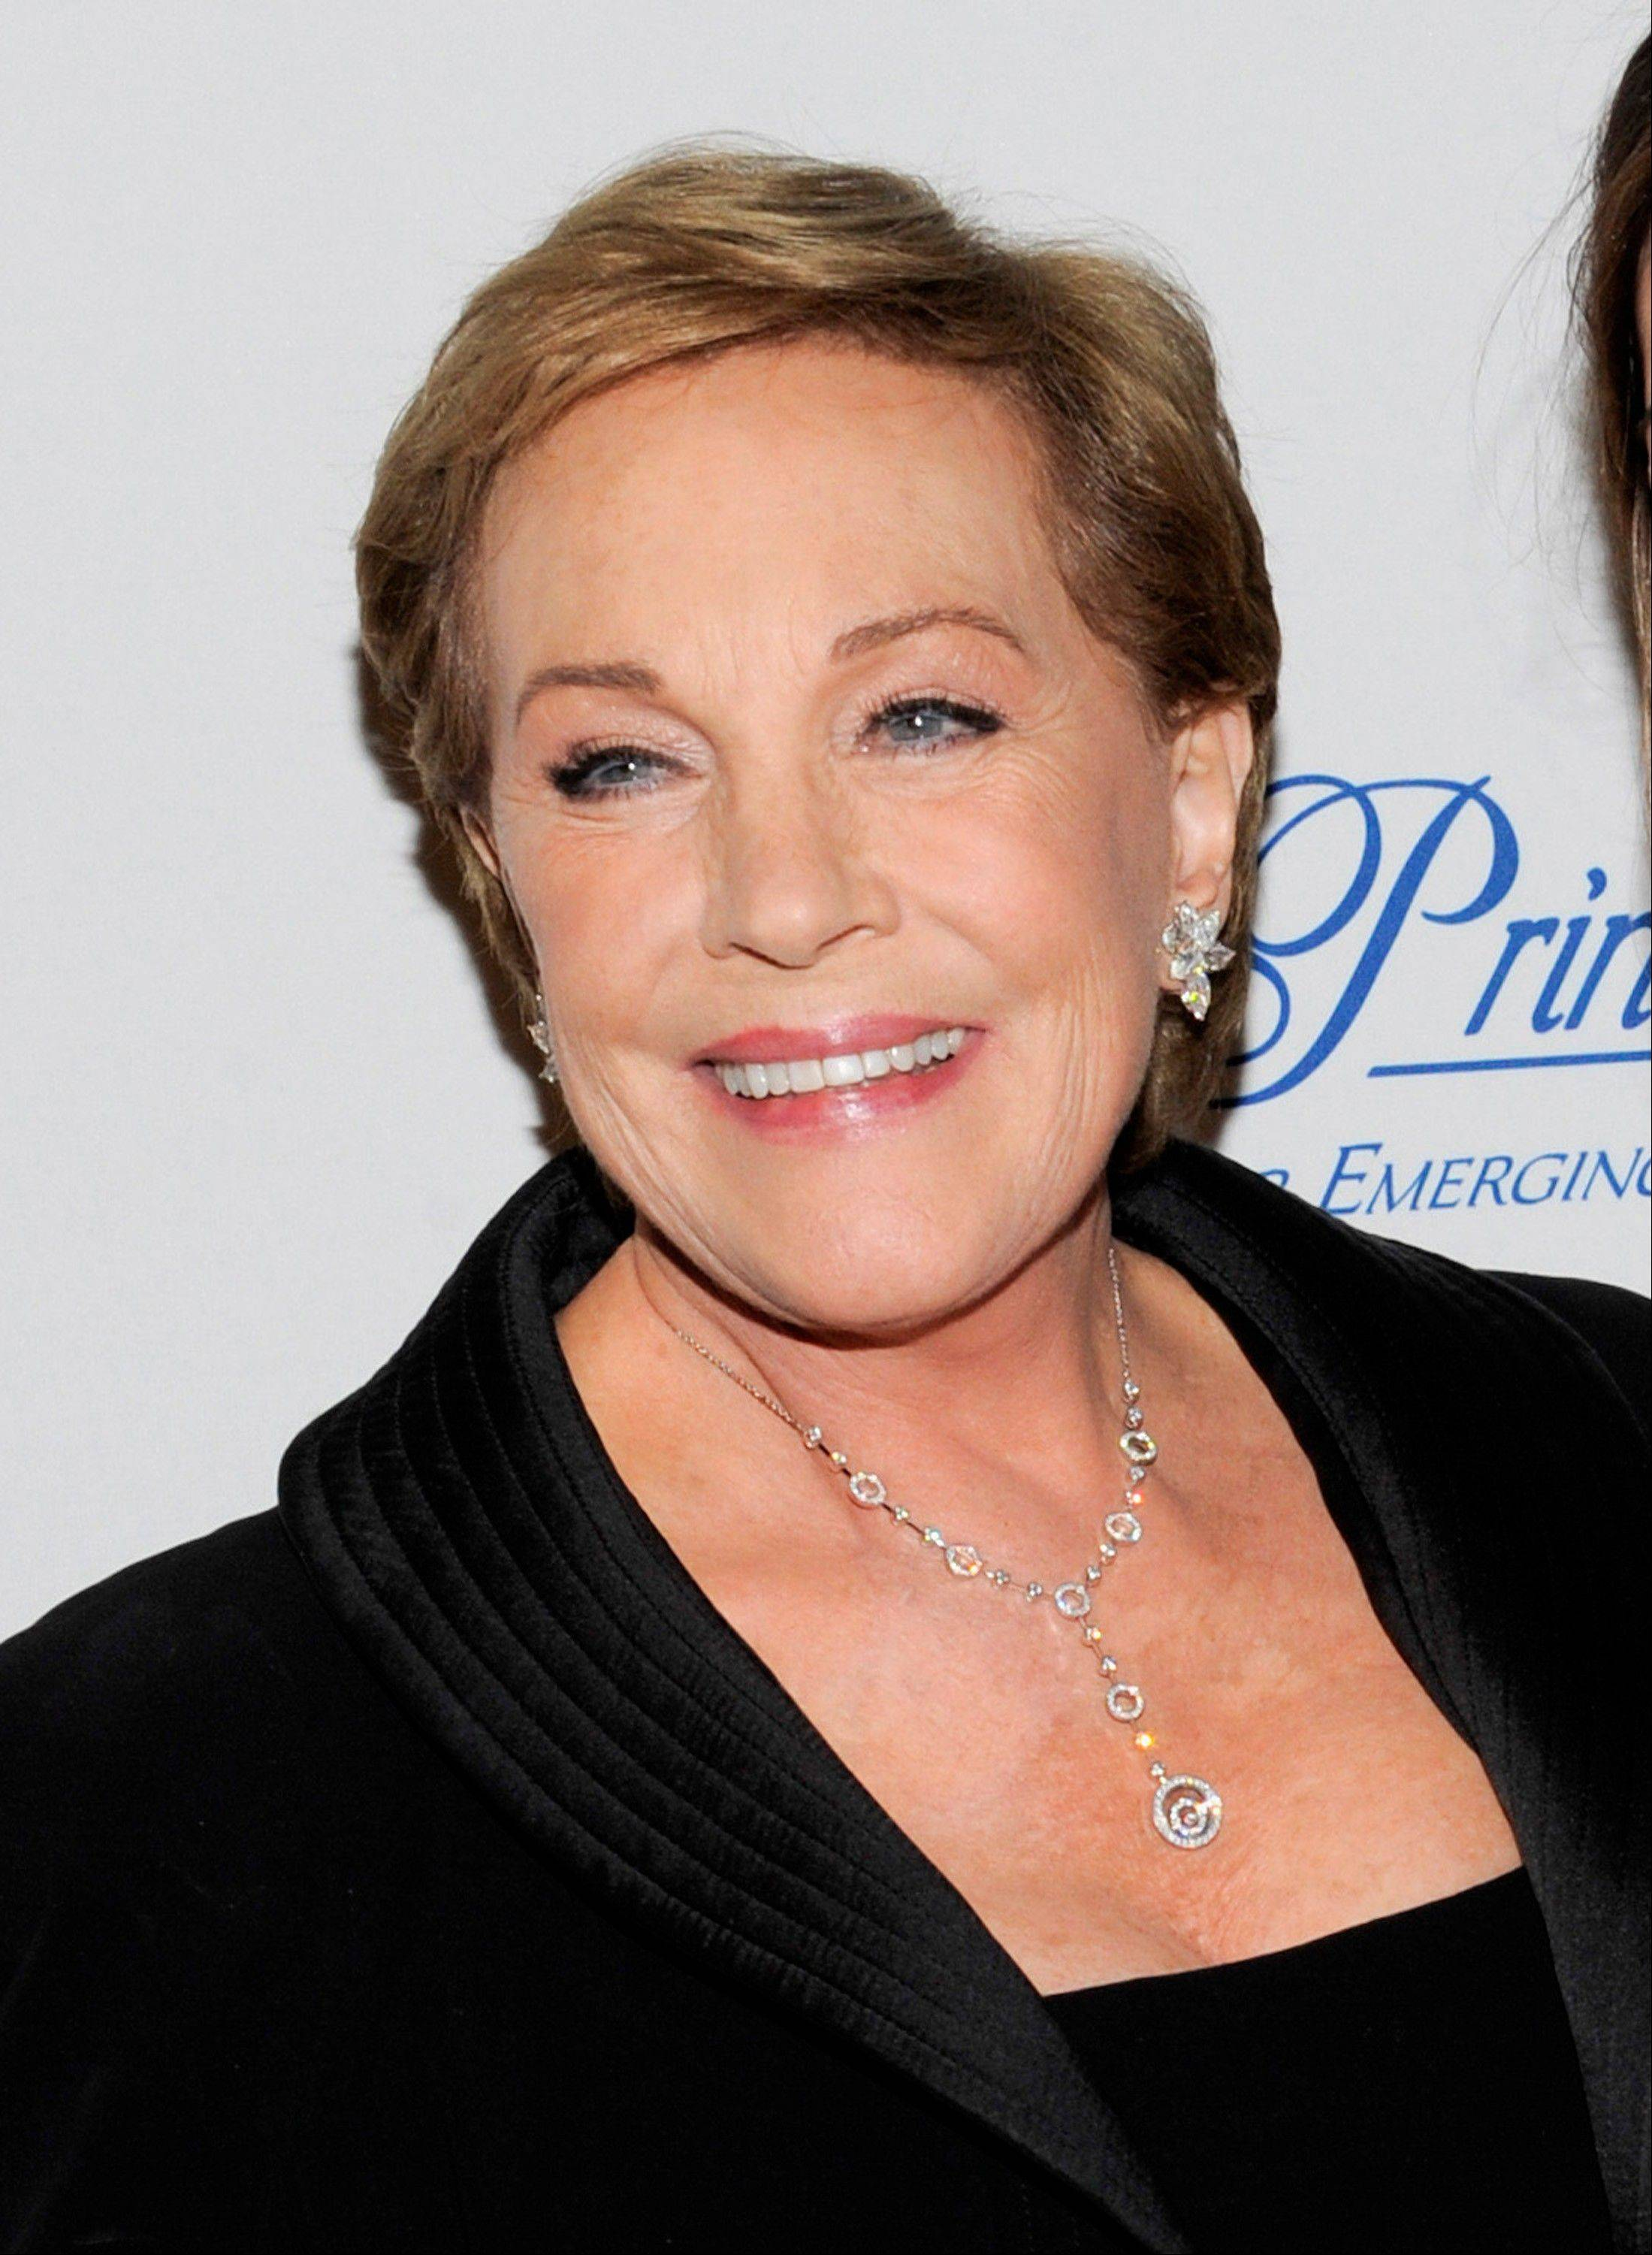 Oscar and Tony Award-winning actress Julie Andrews said that a botched operation to remove noncancerous throat nodules in 1997 hasn't gotten better. It has permanently limited her vocal range and her ability to hold notes.